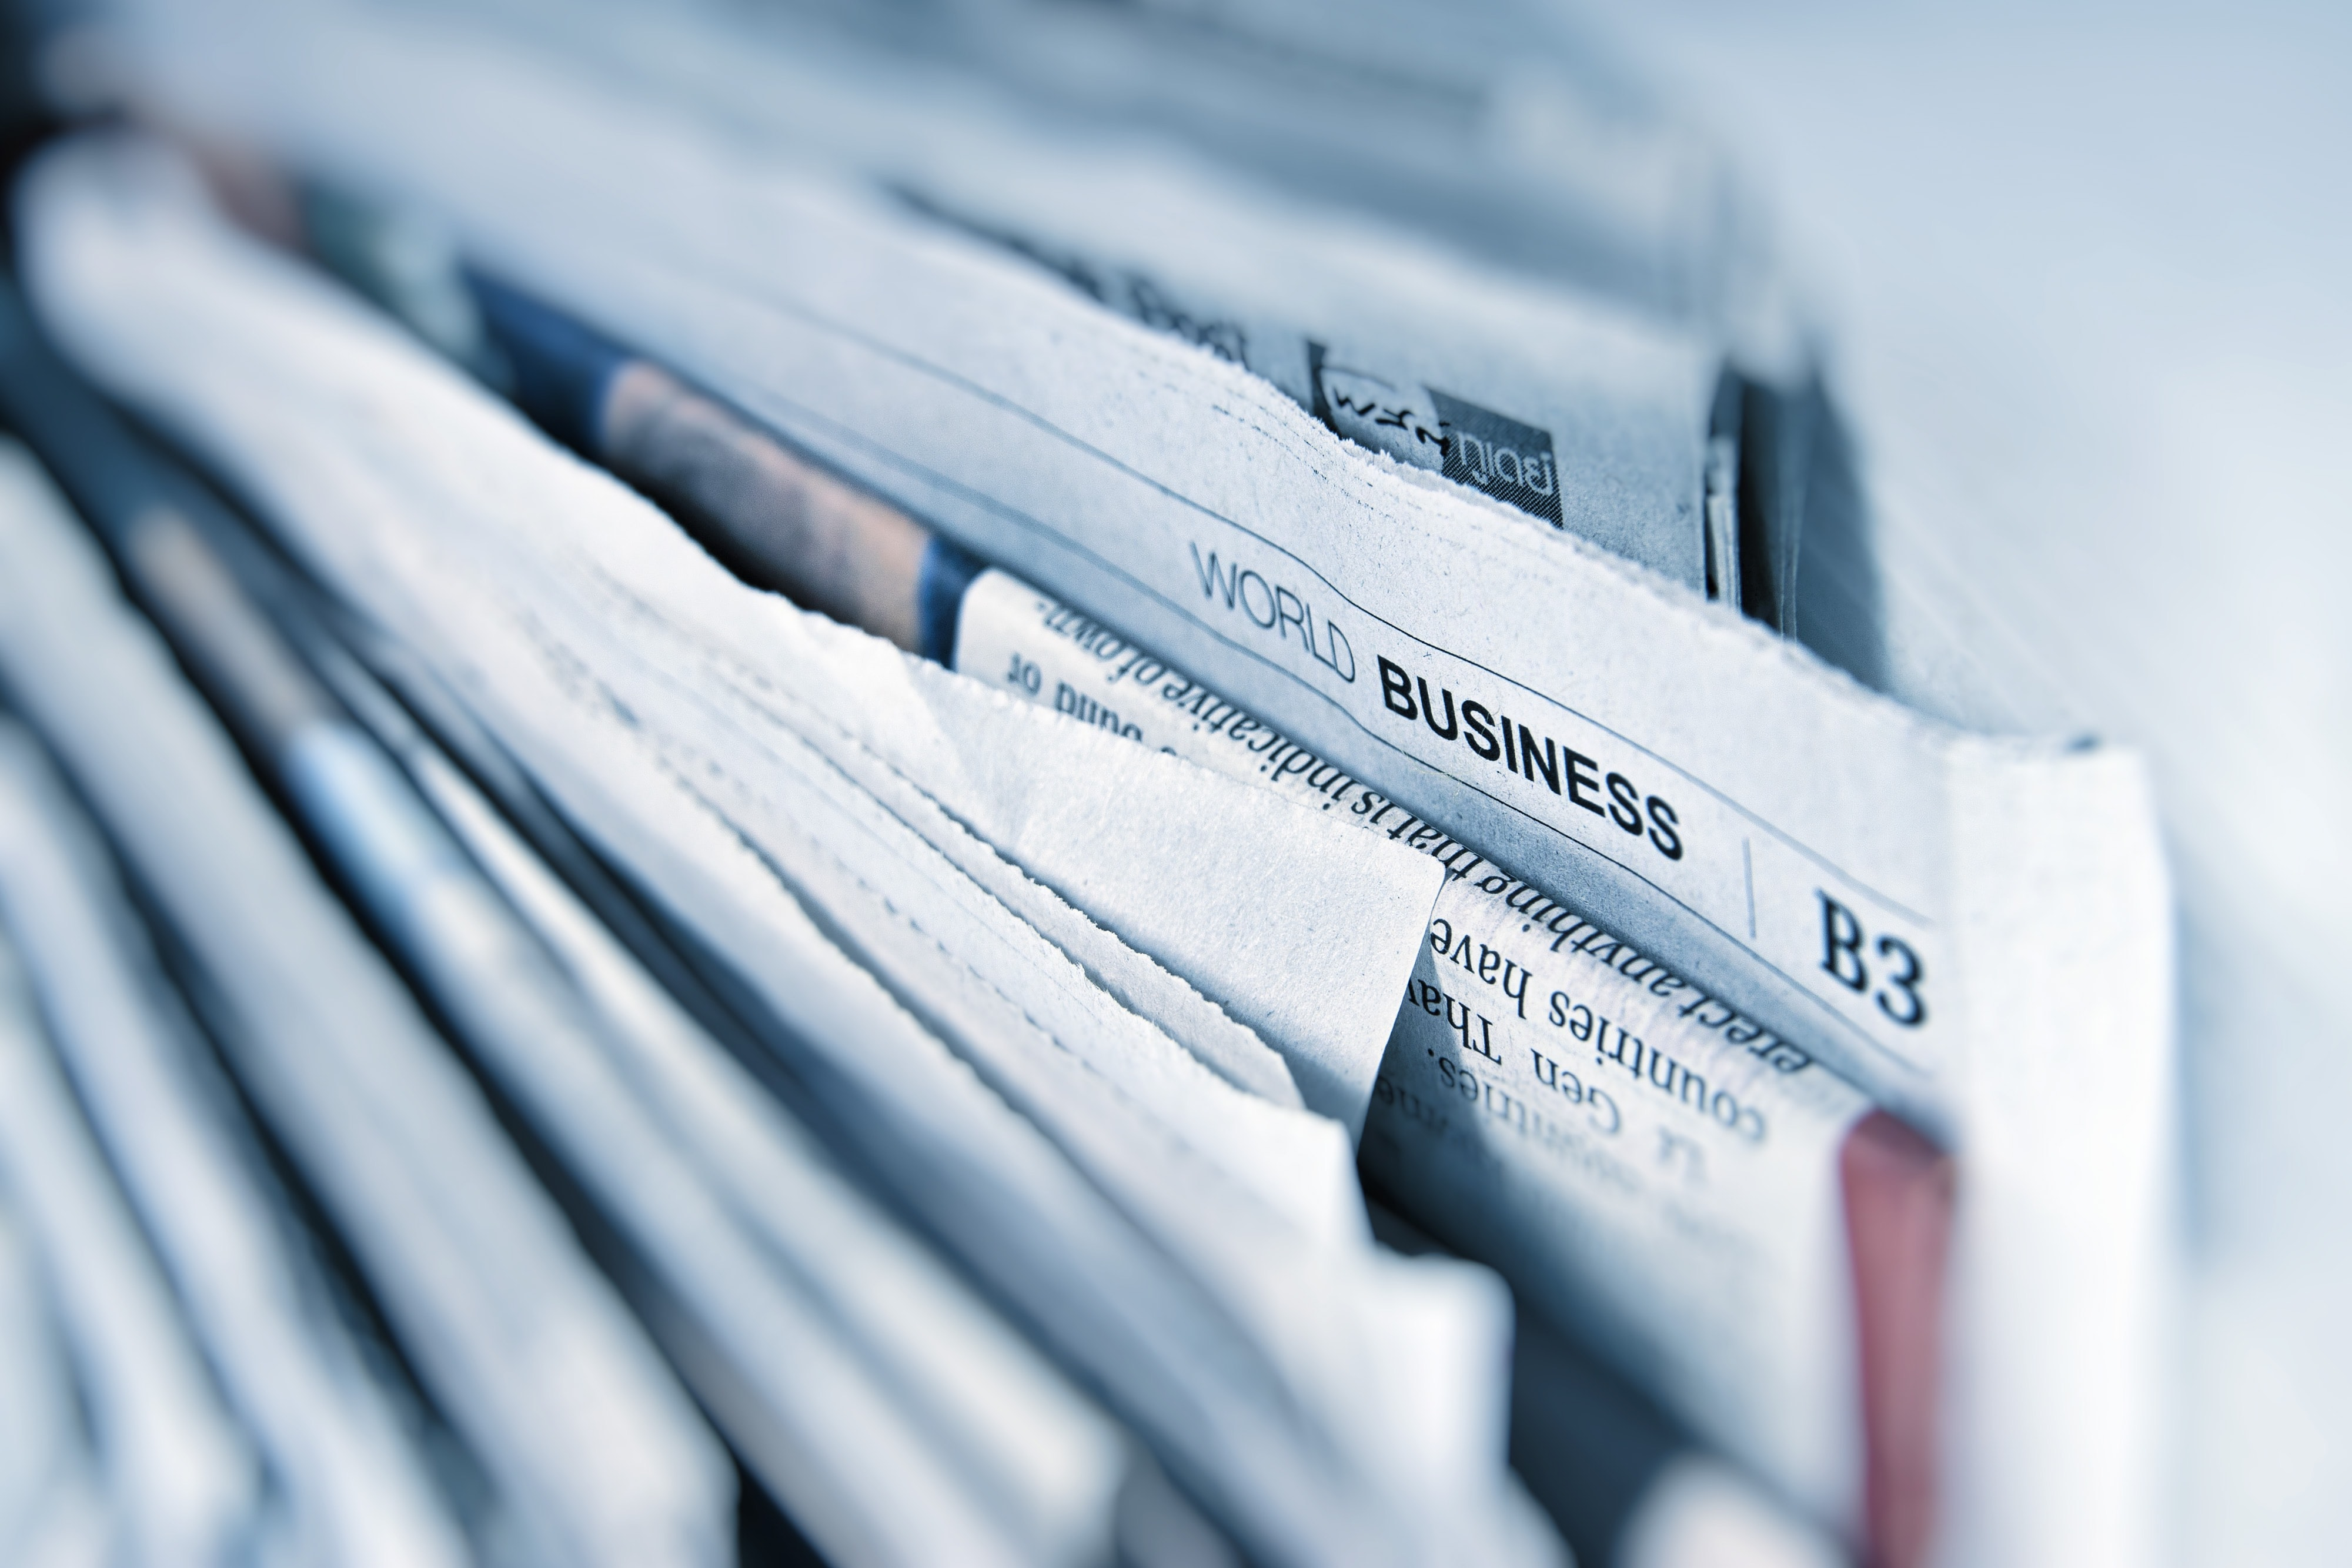 5 Ways to Write a Better Press Release